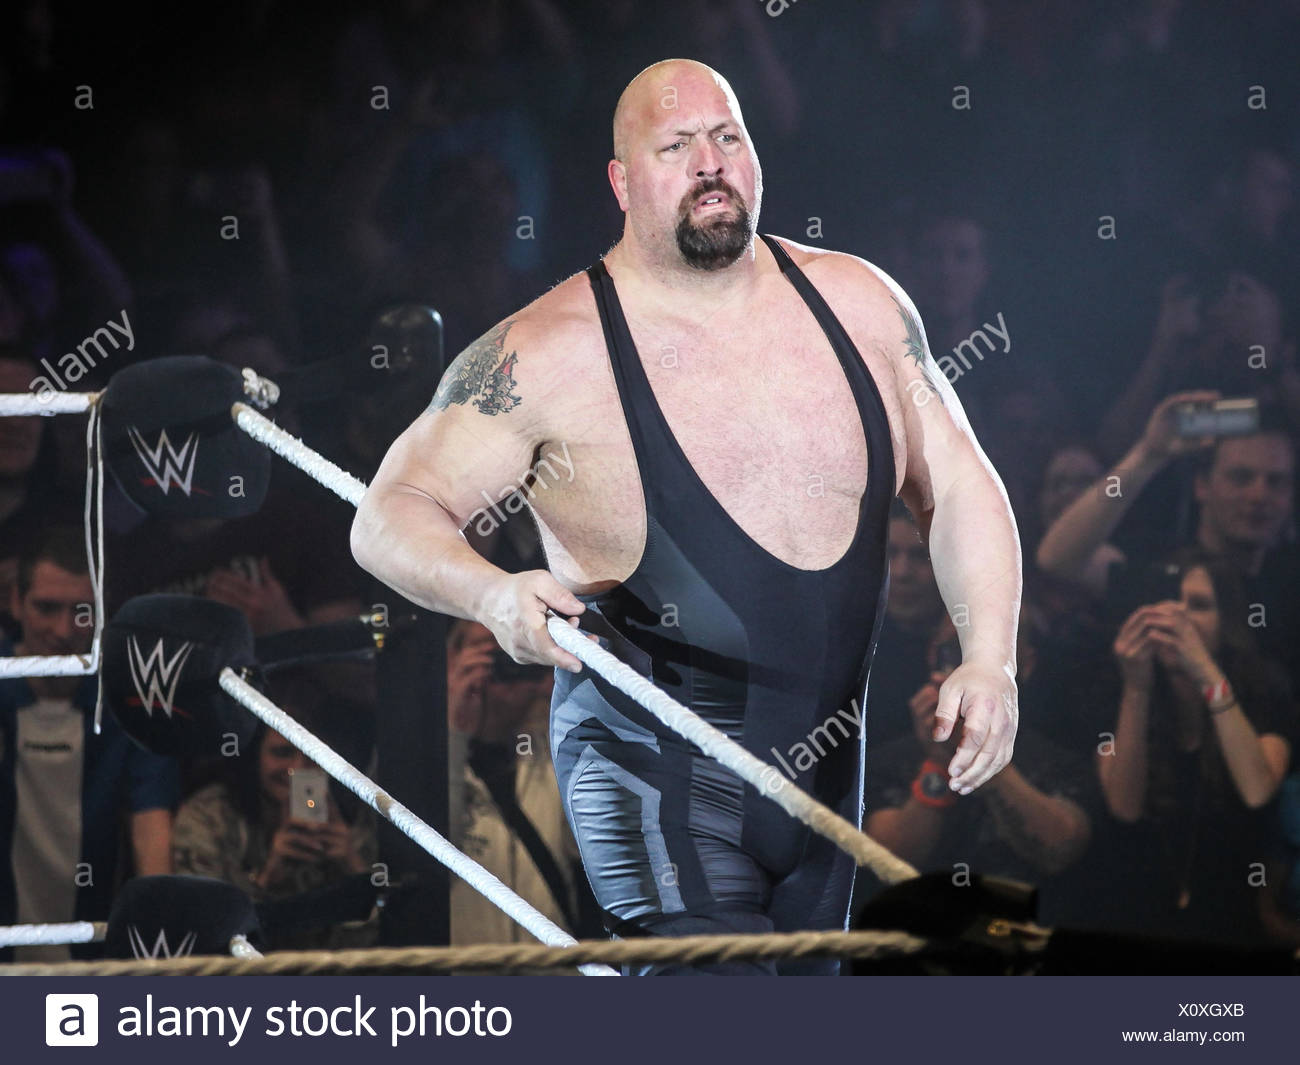 WWE Superstar The Big Show